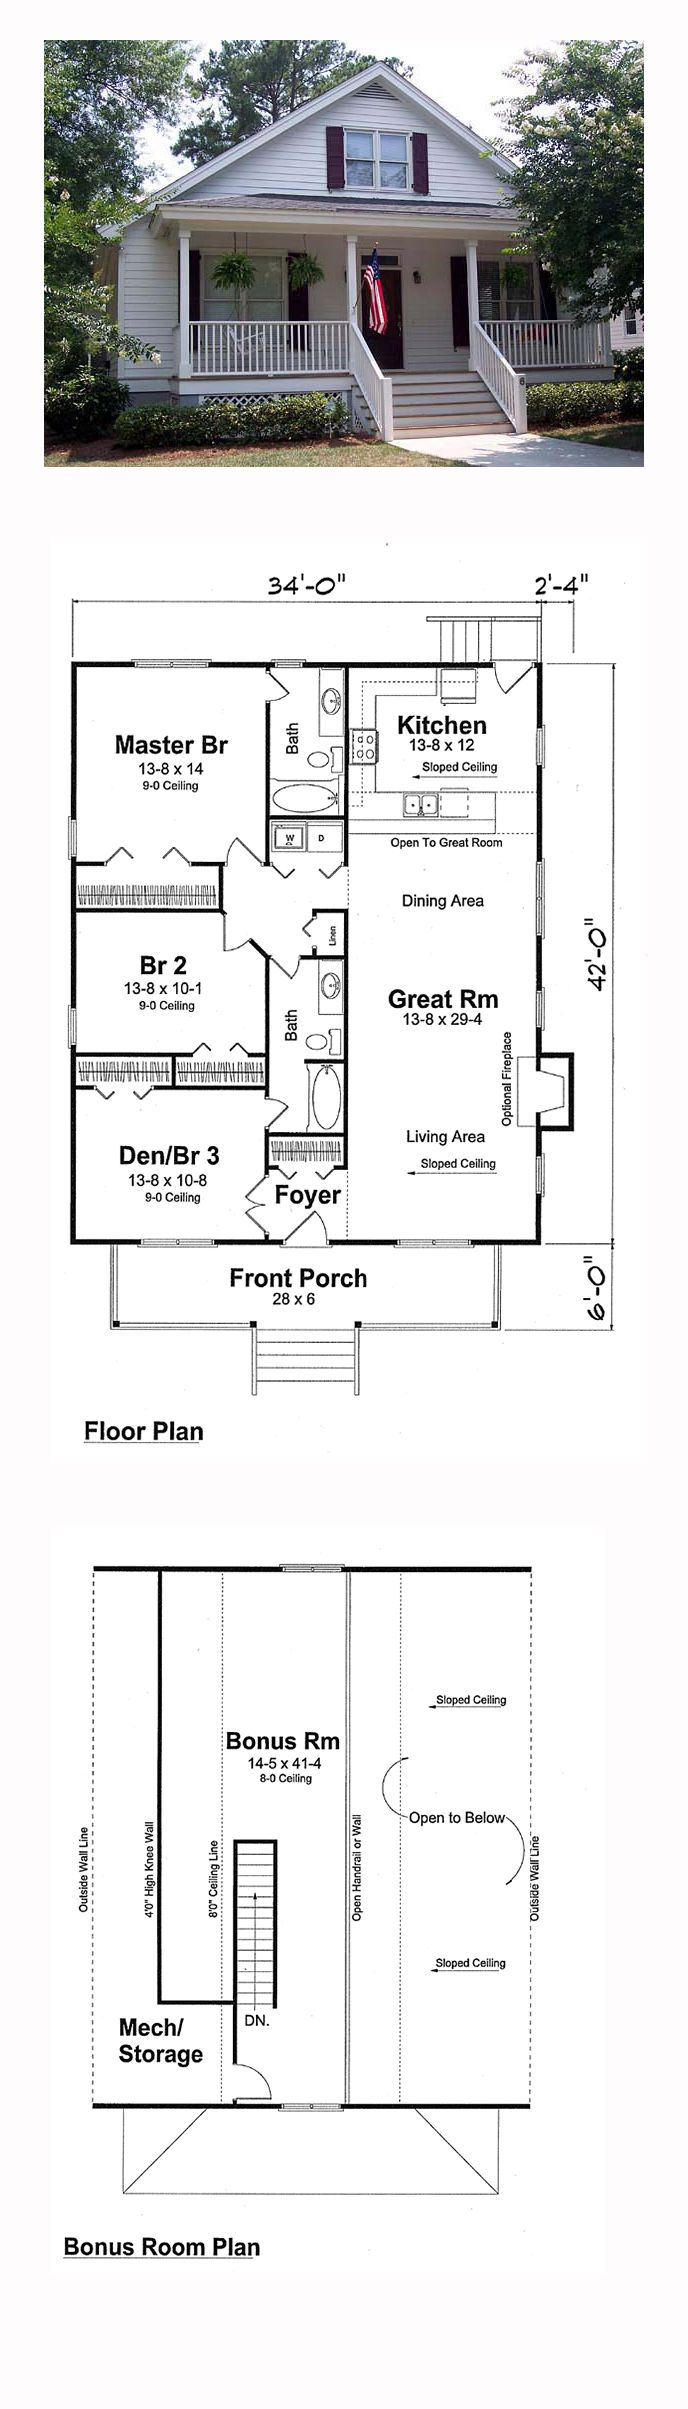 69 best Bungalow House Plans images on Pinterest Bungalow house